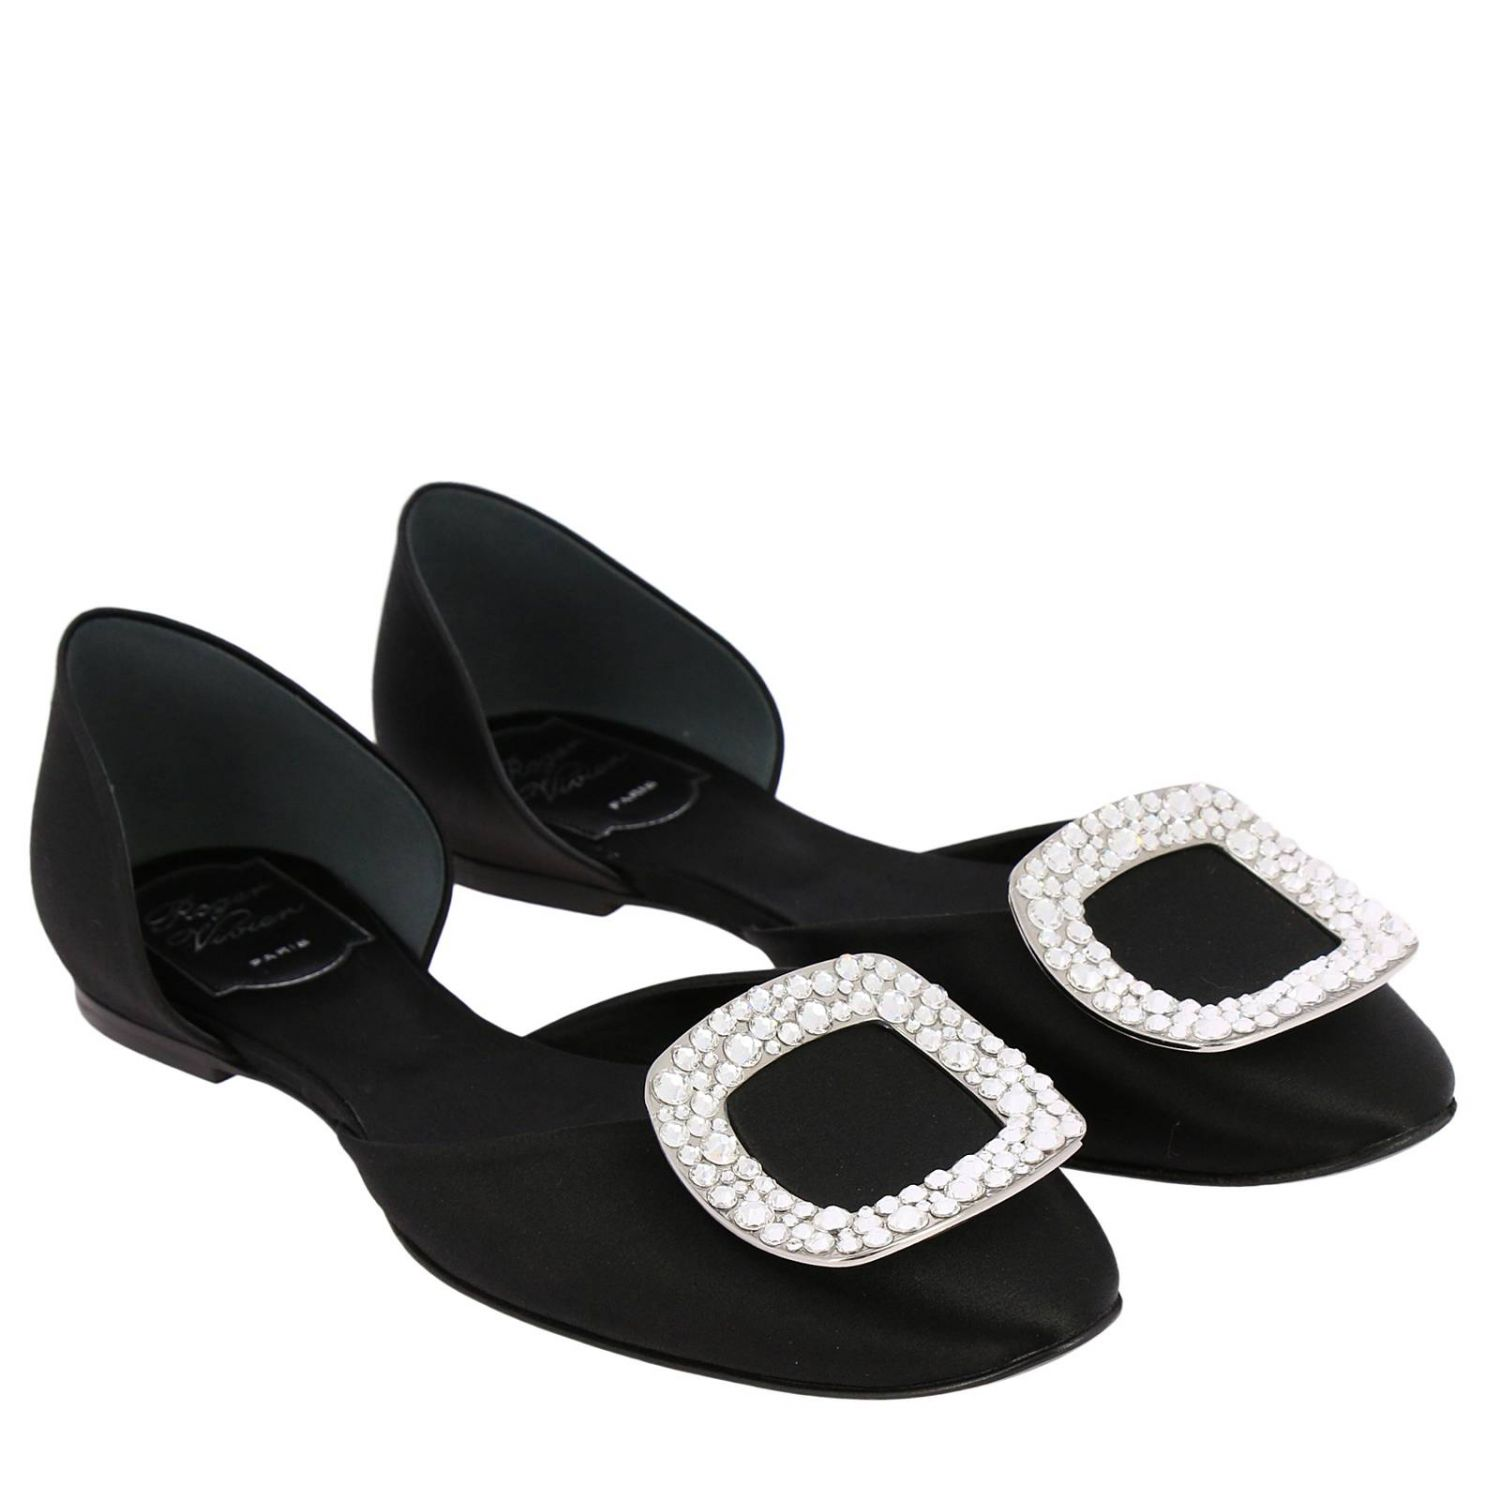 Chips ballet flats with rhinestone buckle in satin black 2